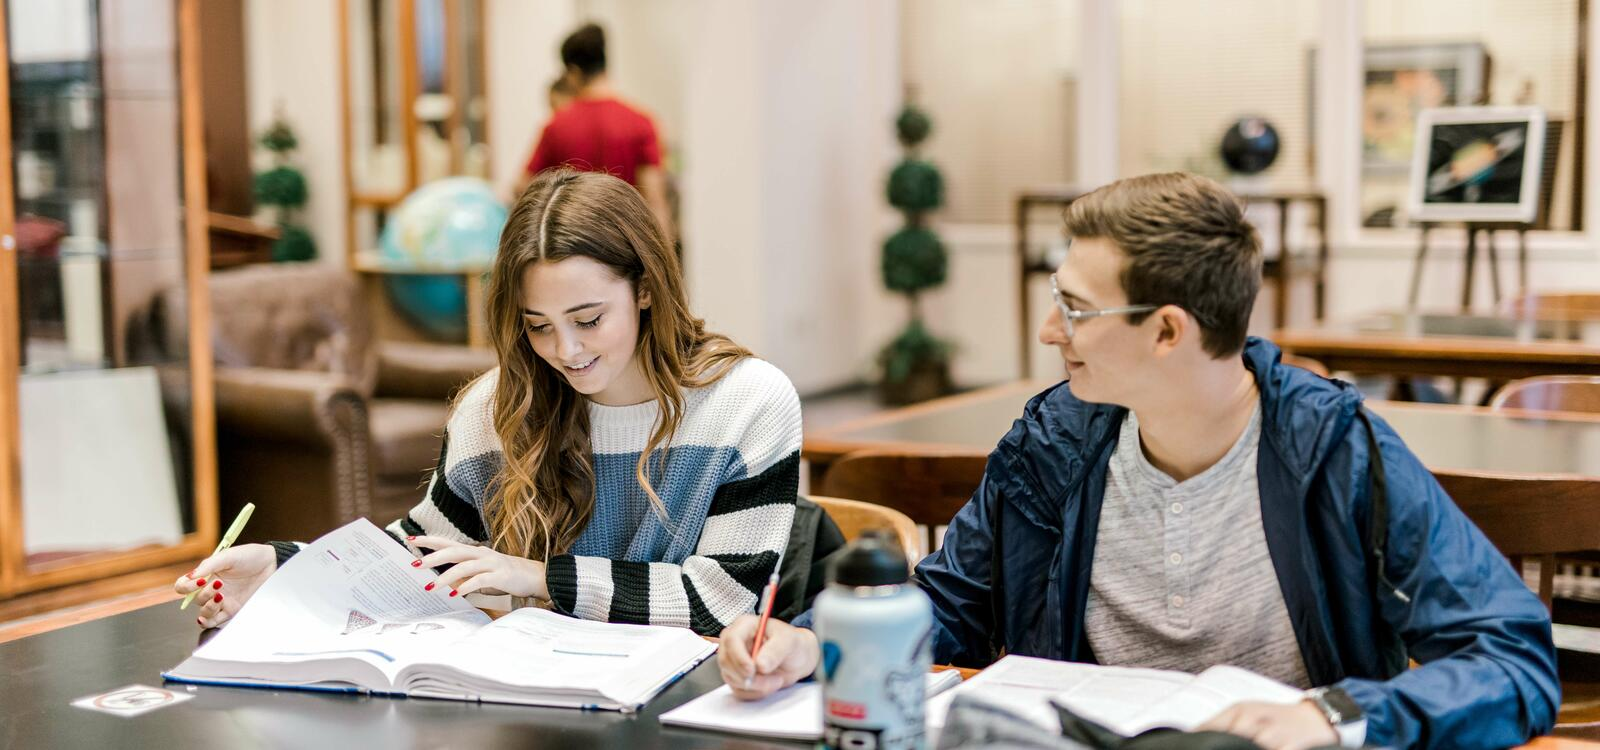 Two students sit at a rectangular table and flip through their textbooks